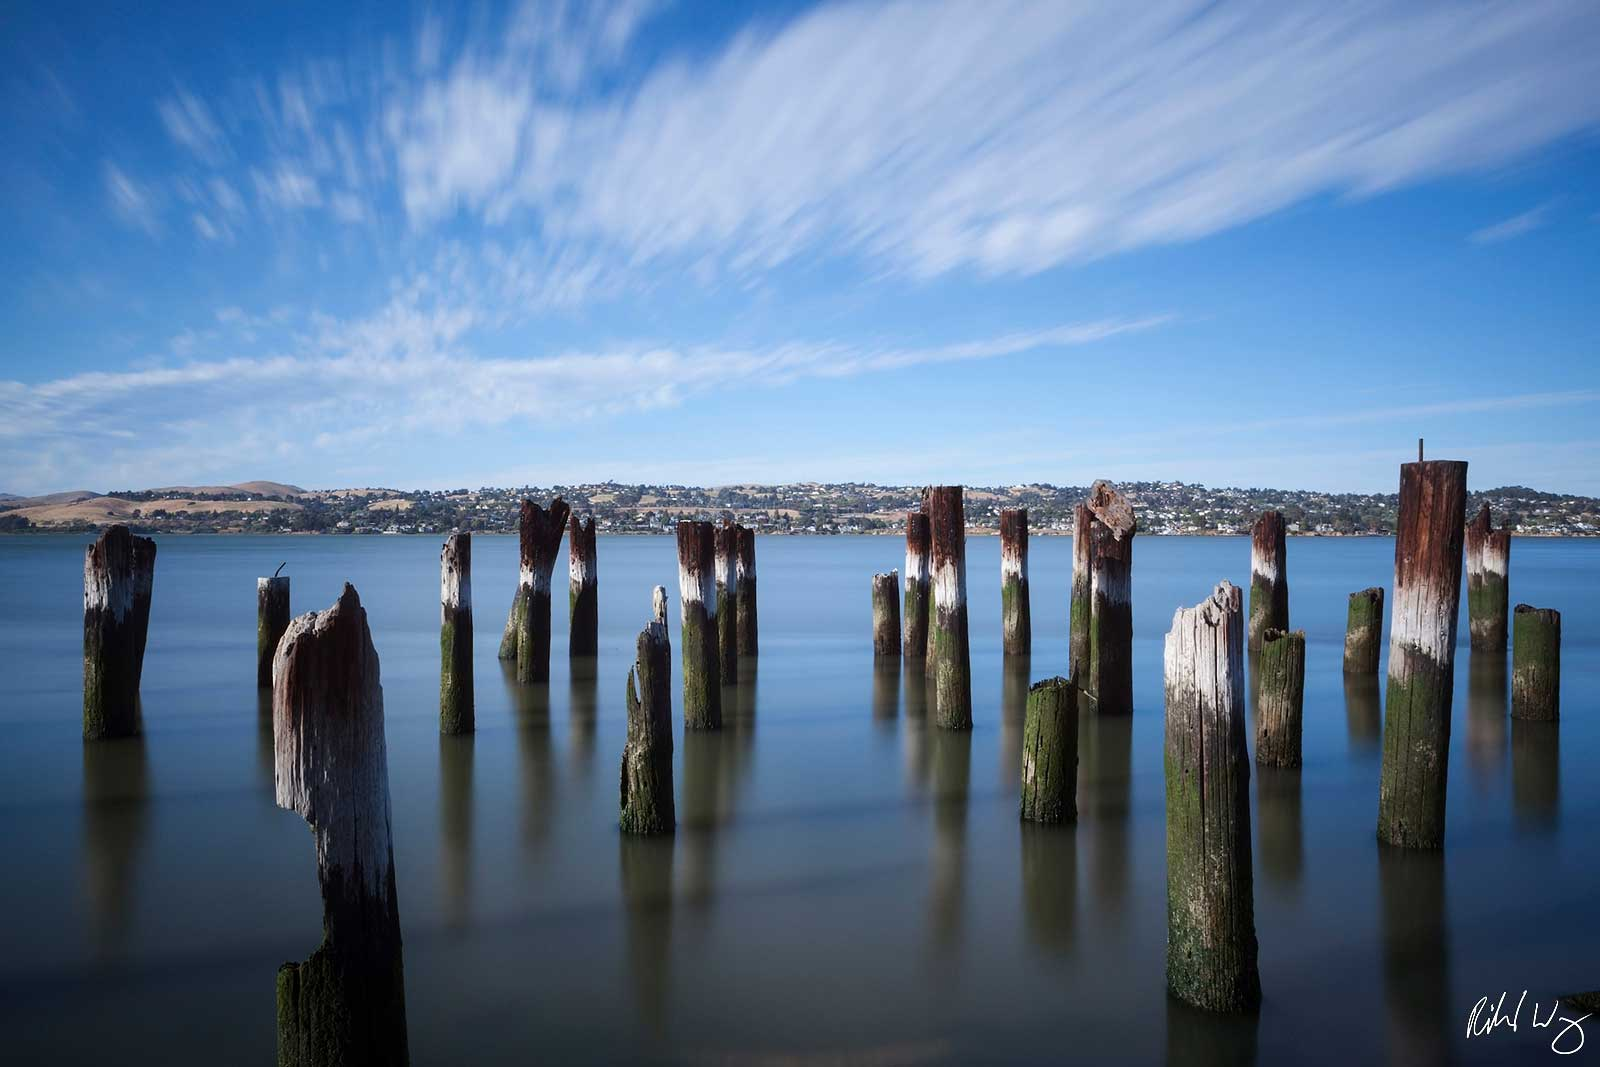 Port Costa Old Pier Pilings, Contra Costa County, California, Photo, photo